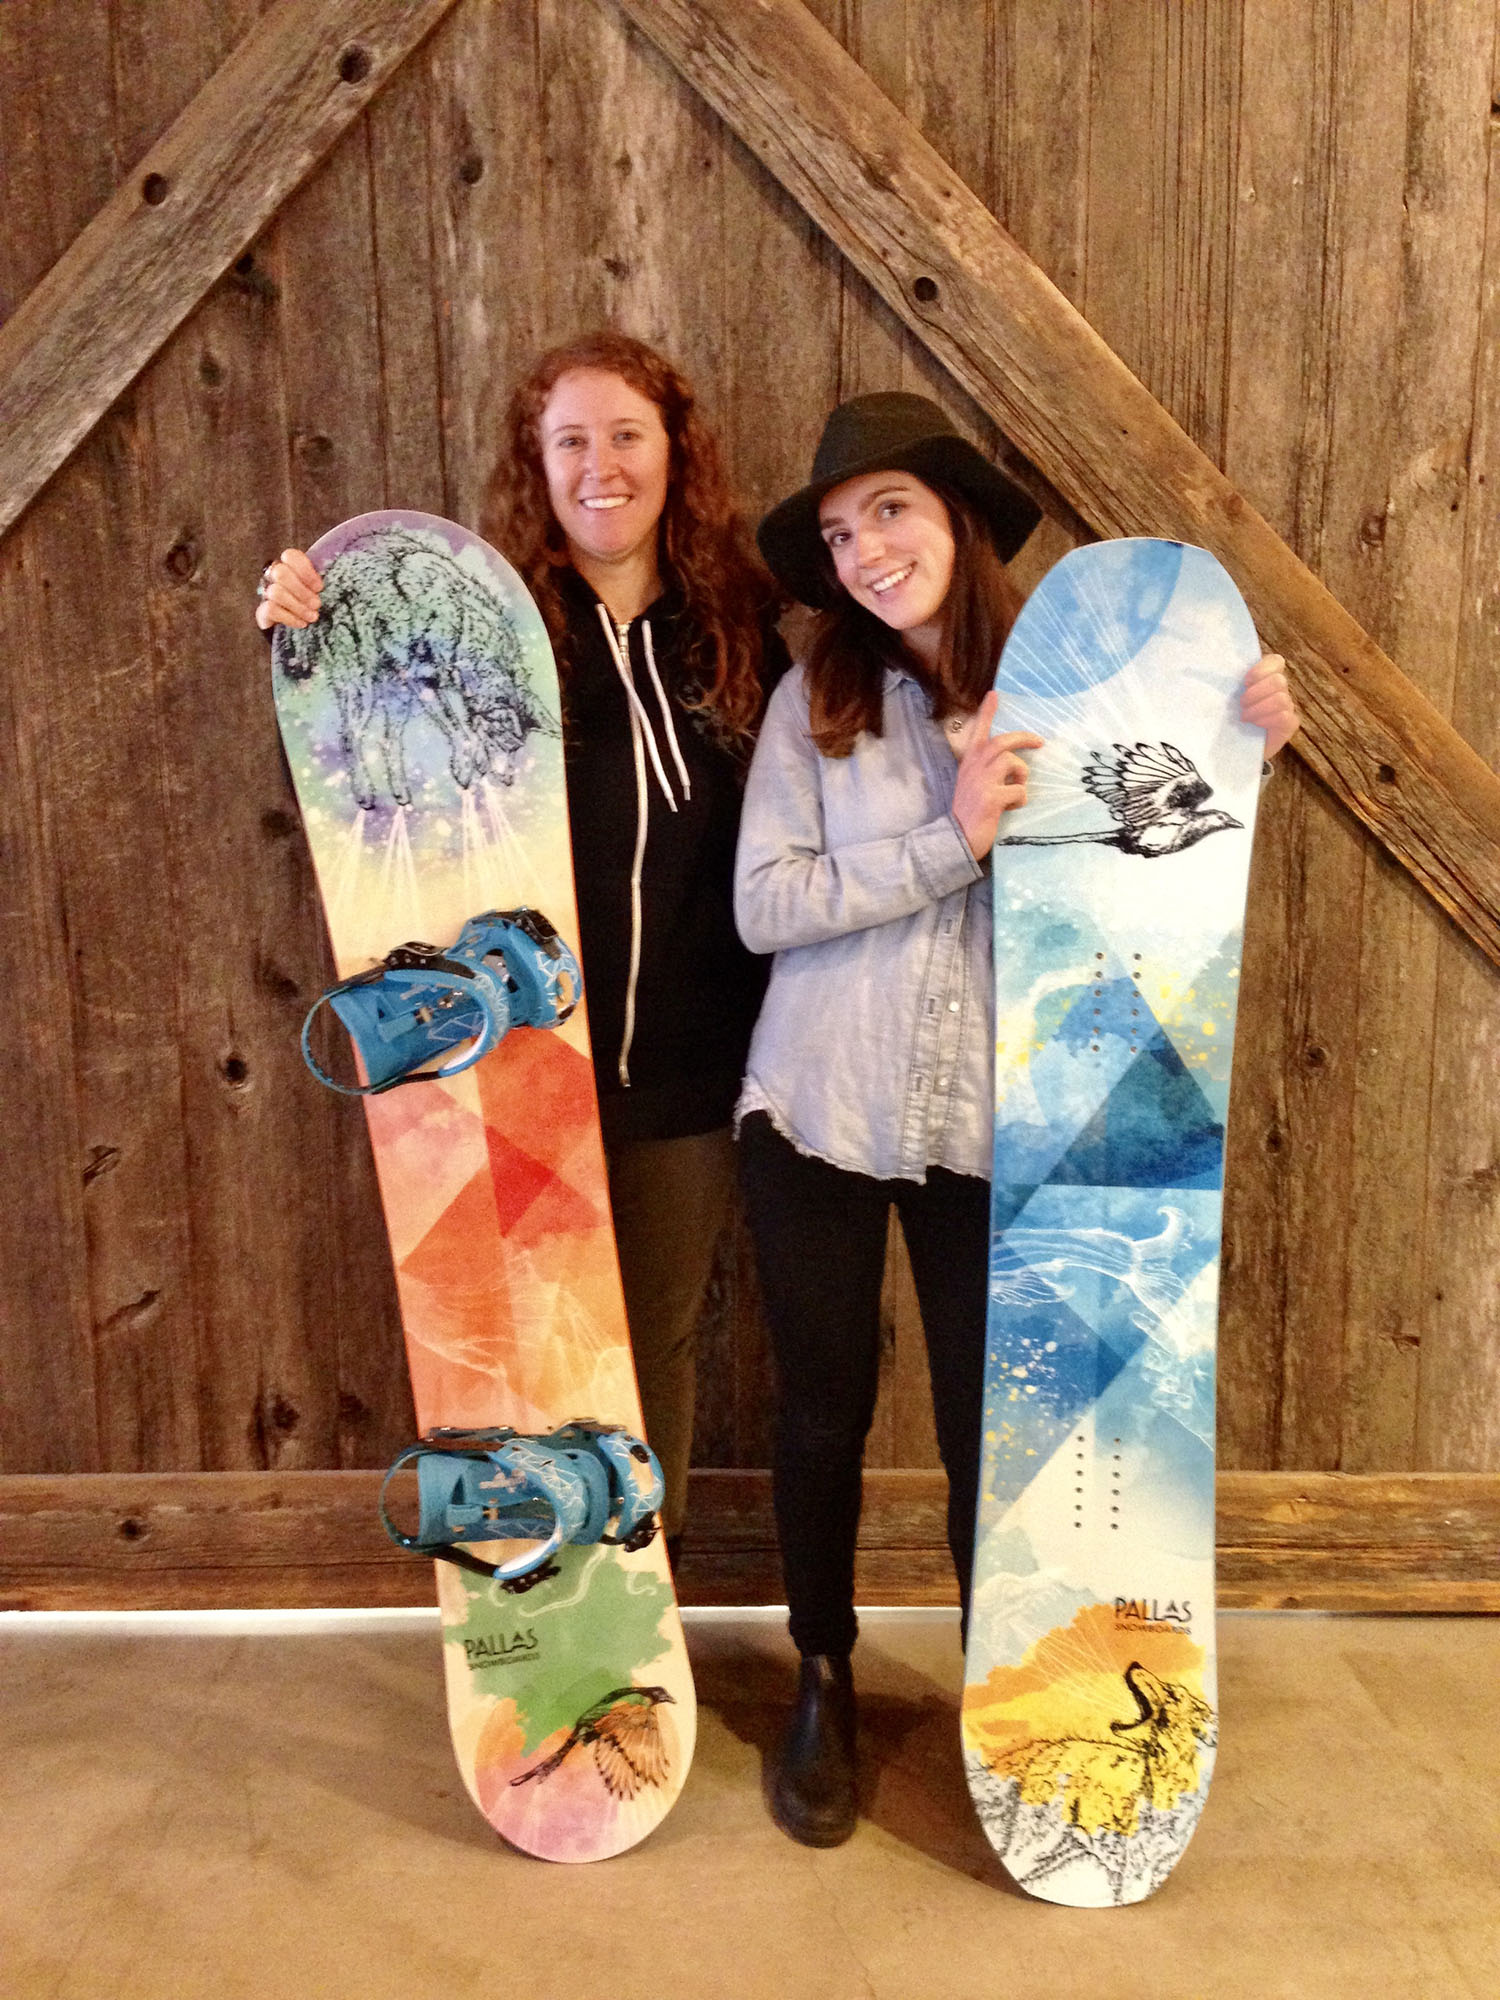 Pallas Snowboards – Steph and I holding the 2018 Girl Scout and Hedonist boards